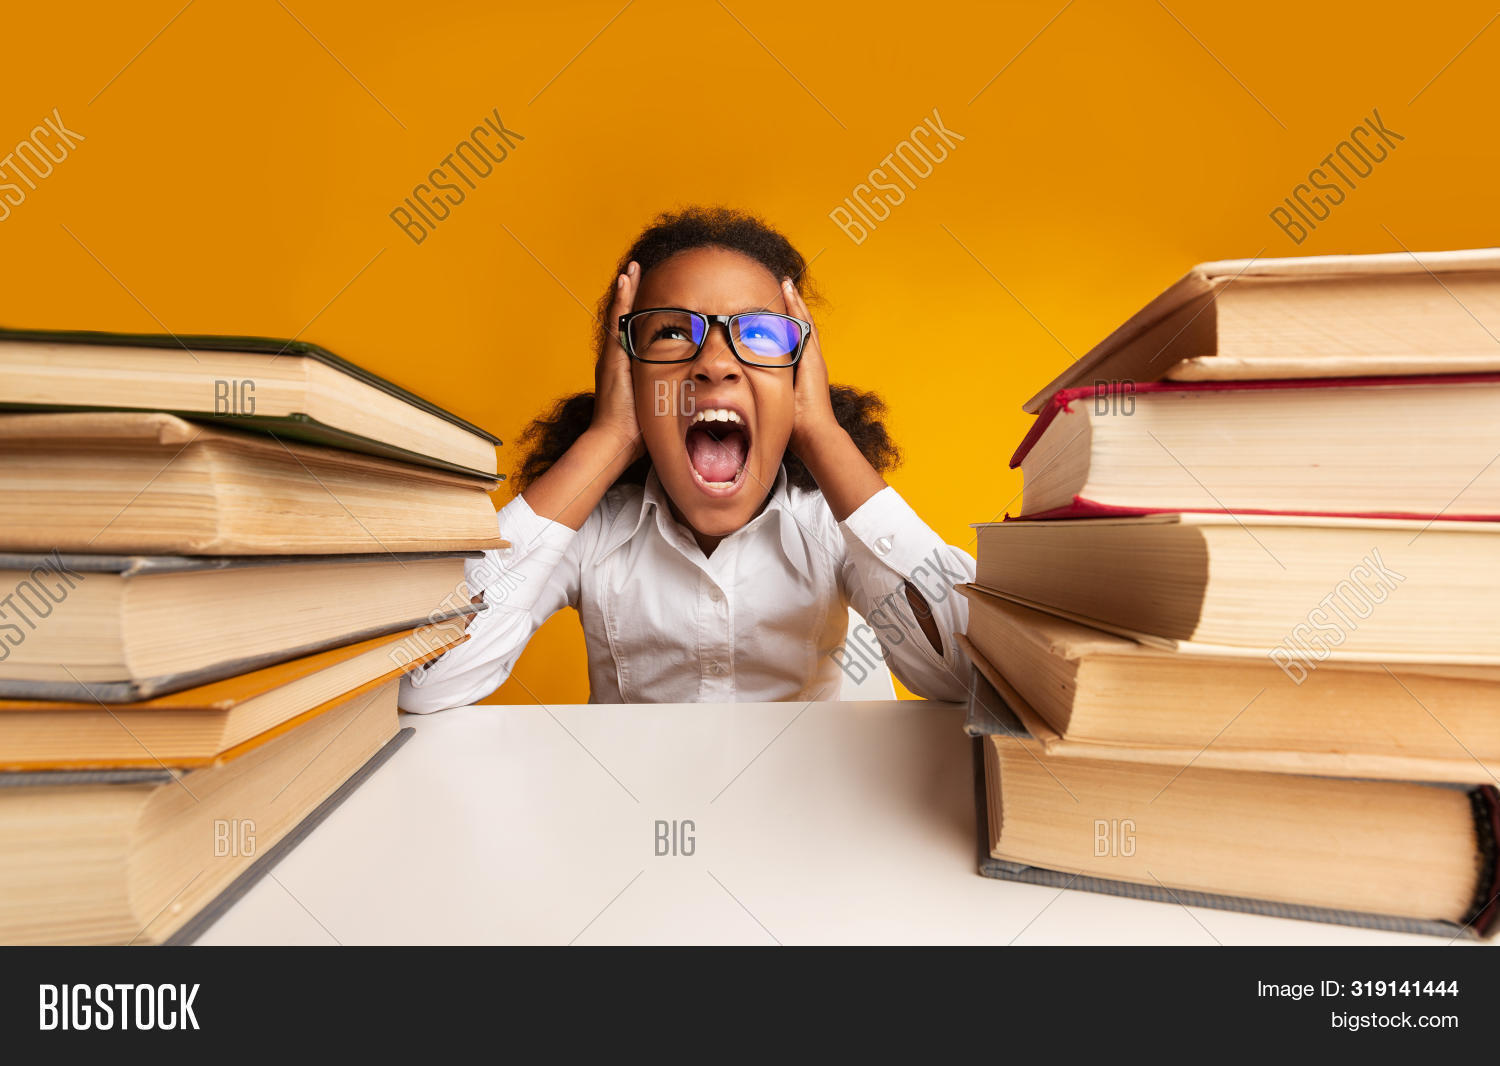 School Overload. African American Schoolgirl Shouting Clutching Head Sitting Between Two Book Stacks